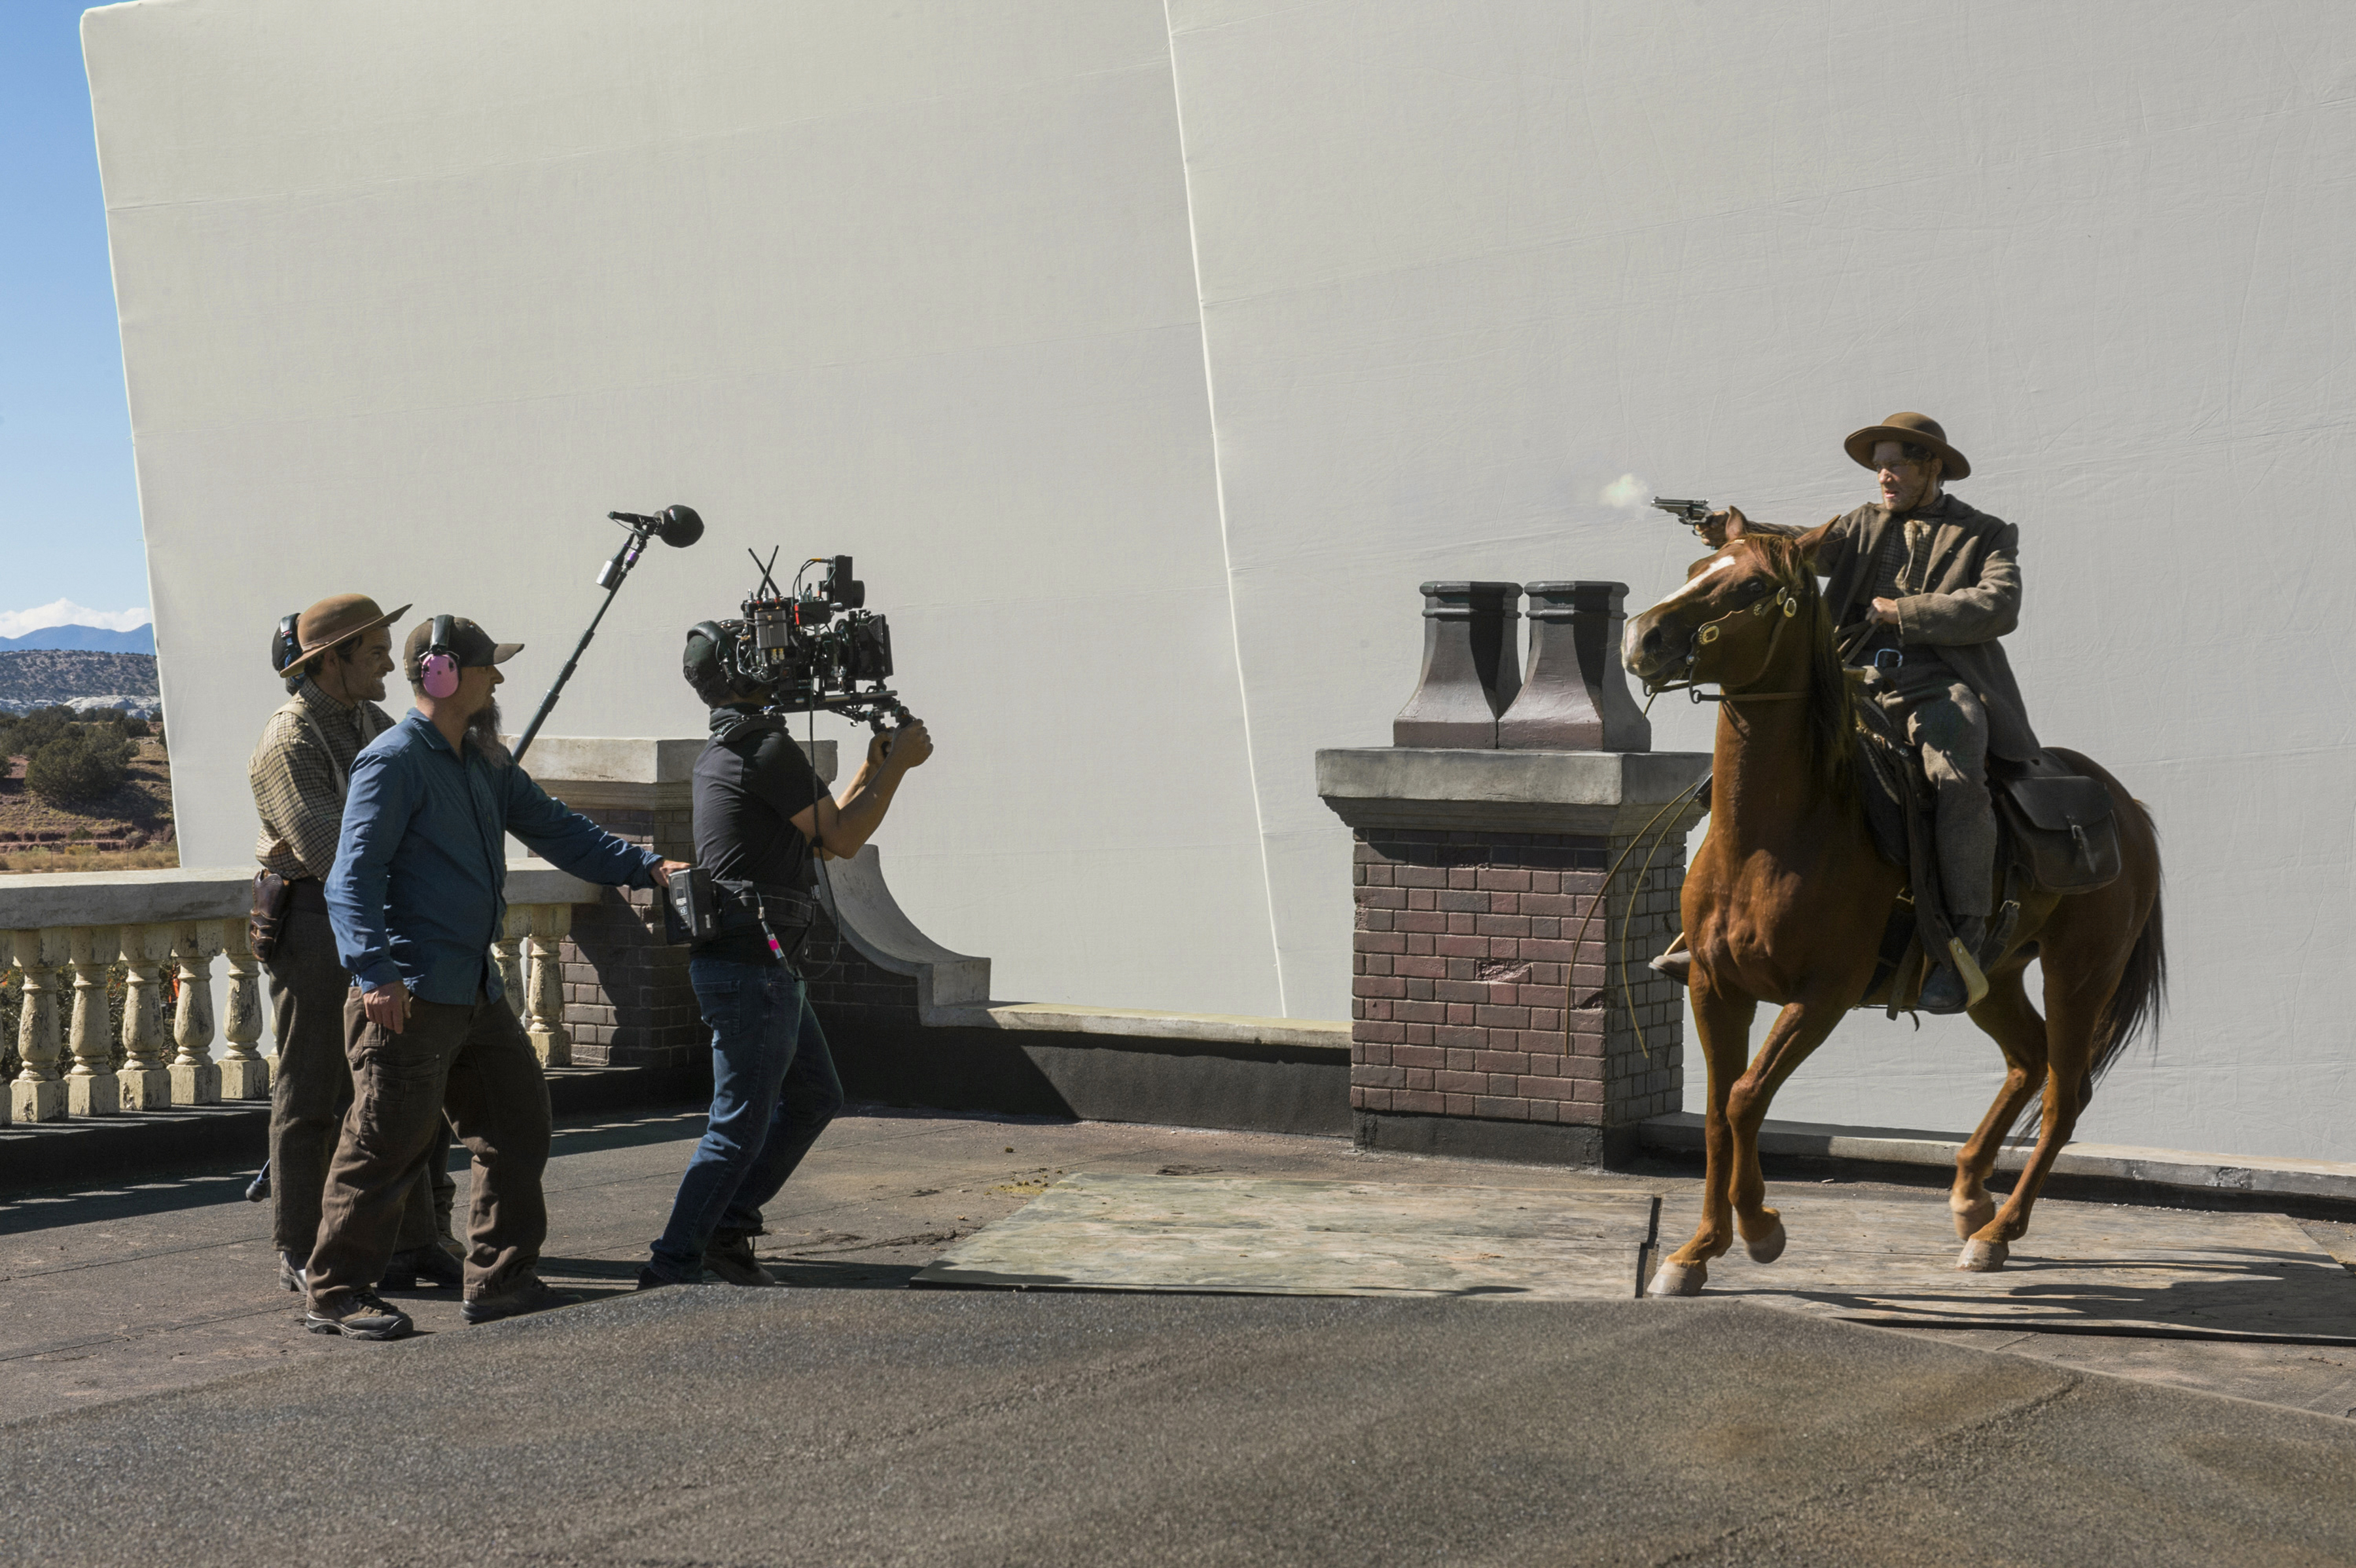 Netflix Buys New Mexico Production Hub: Why Hollywood Is Sinking Billions Into Albuquerque